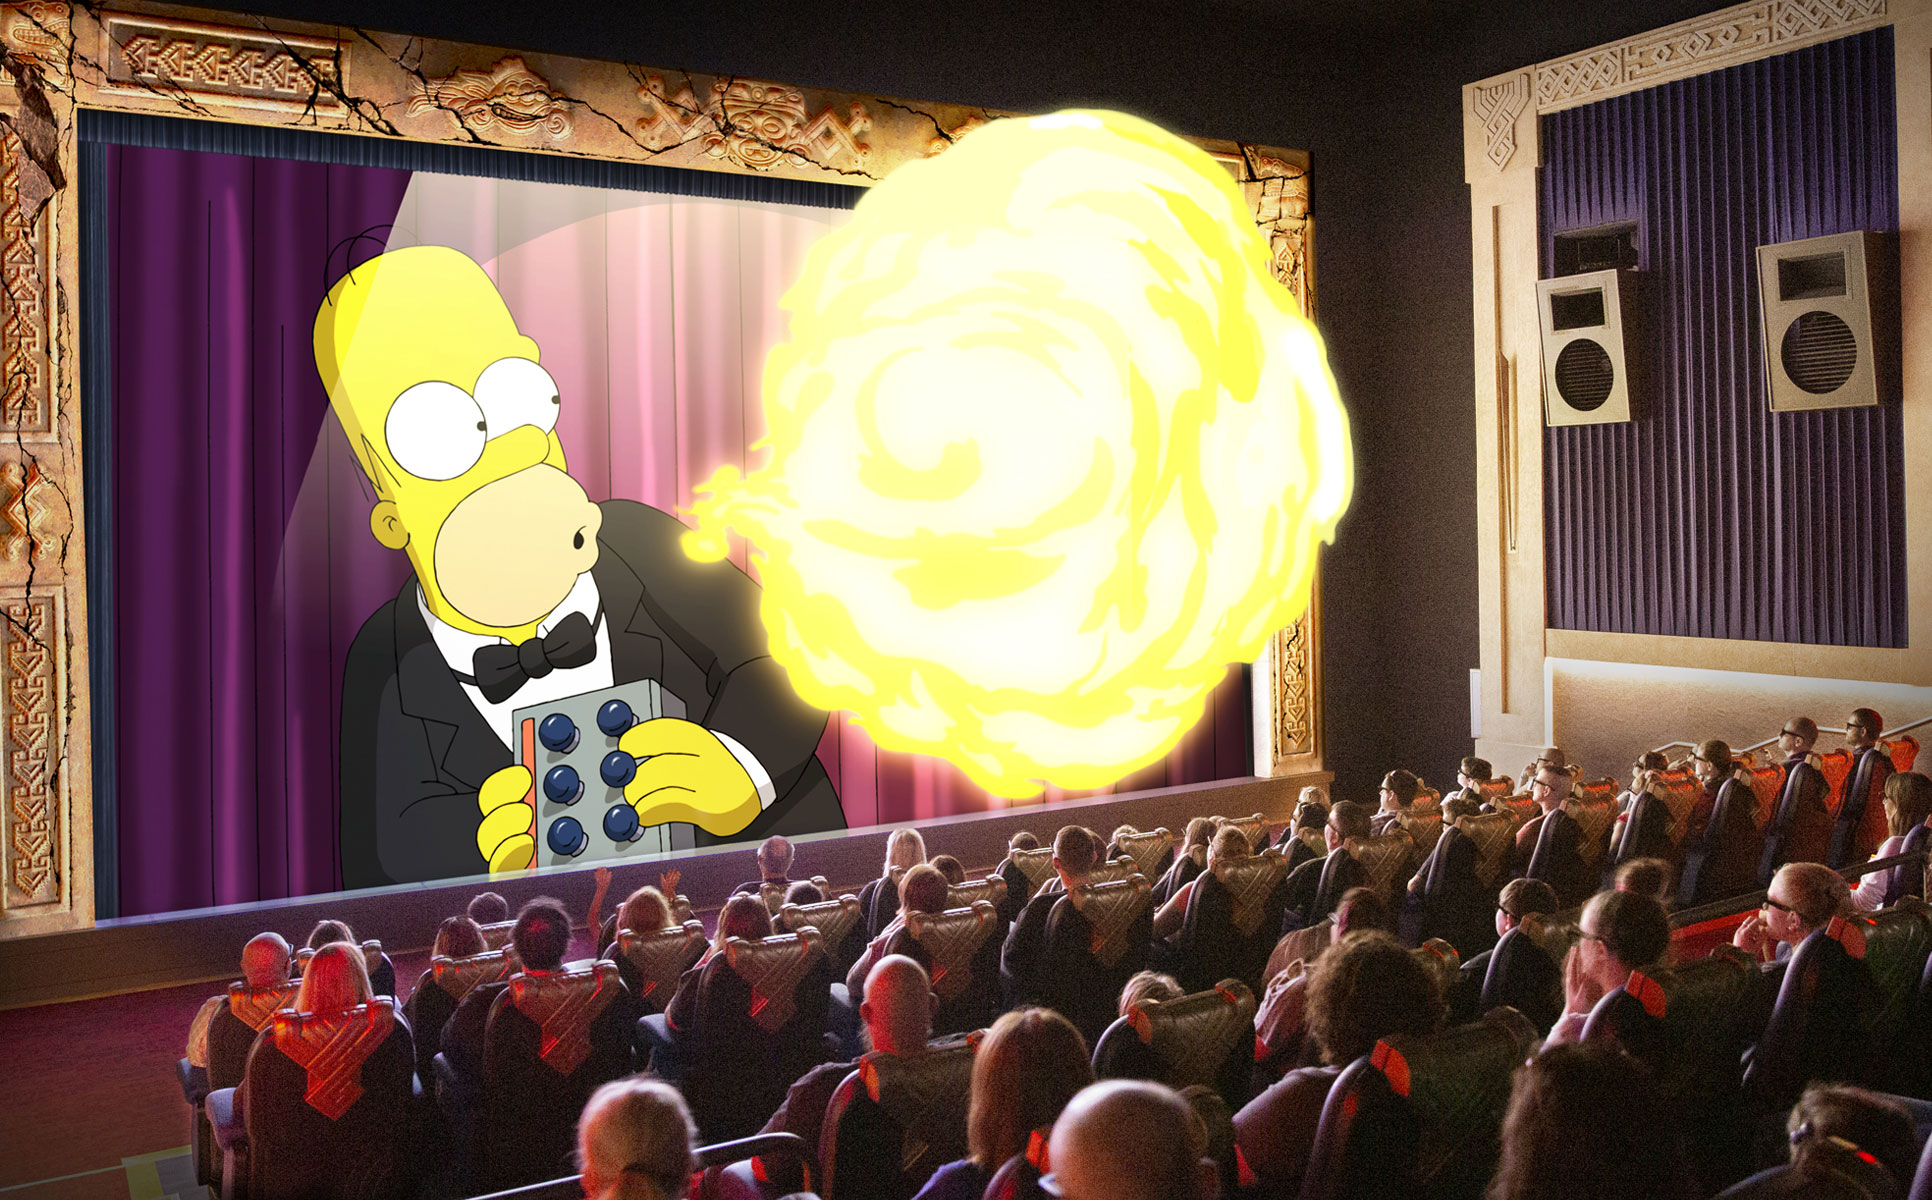 homer dodging a fireball on the screen of the theater